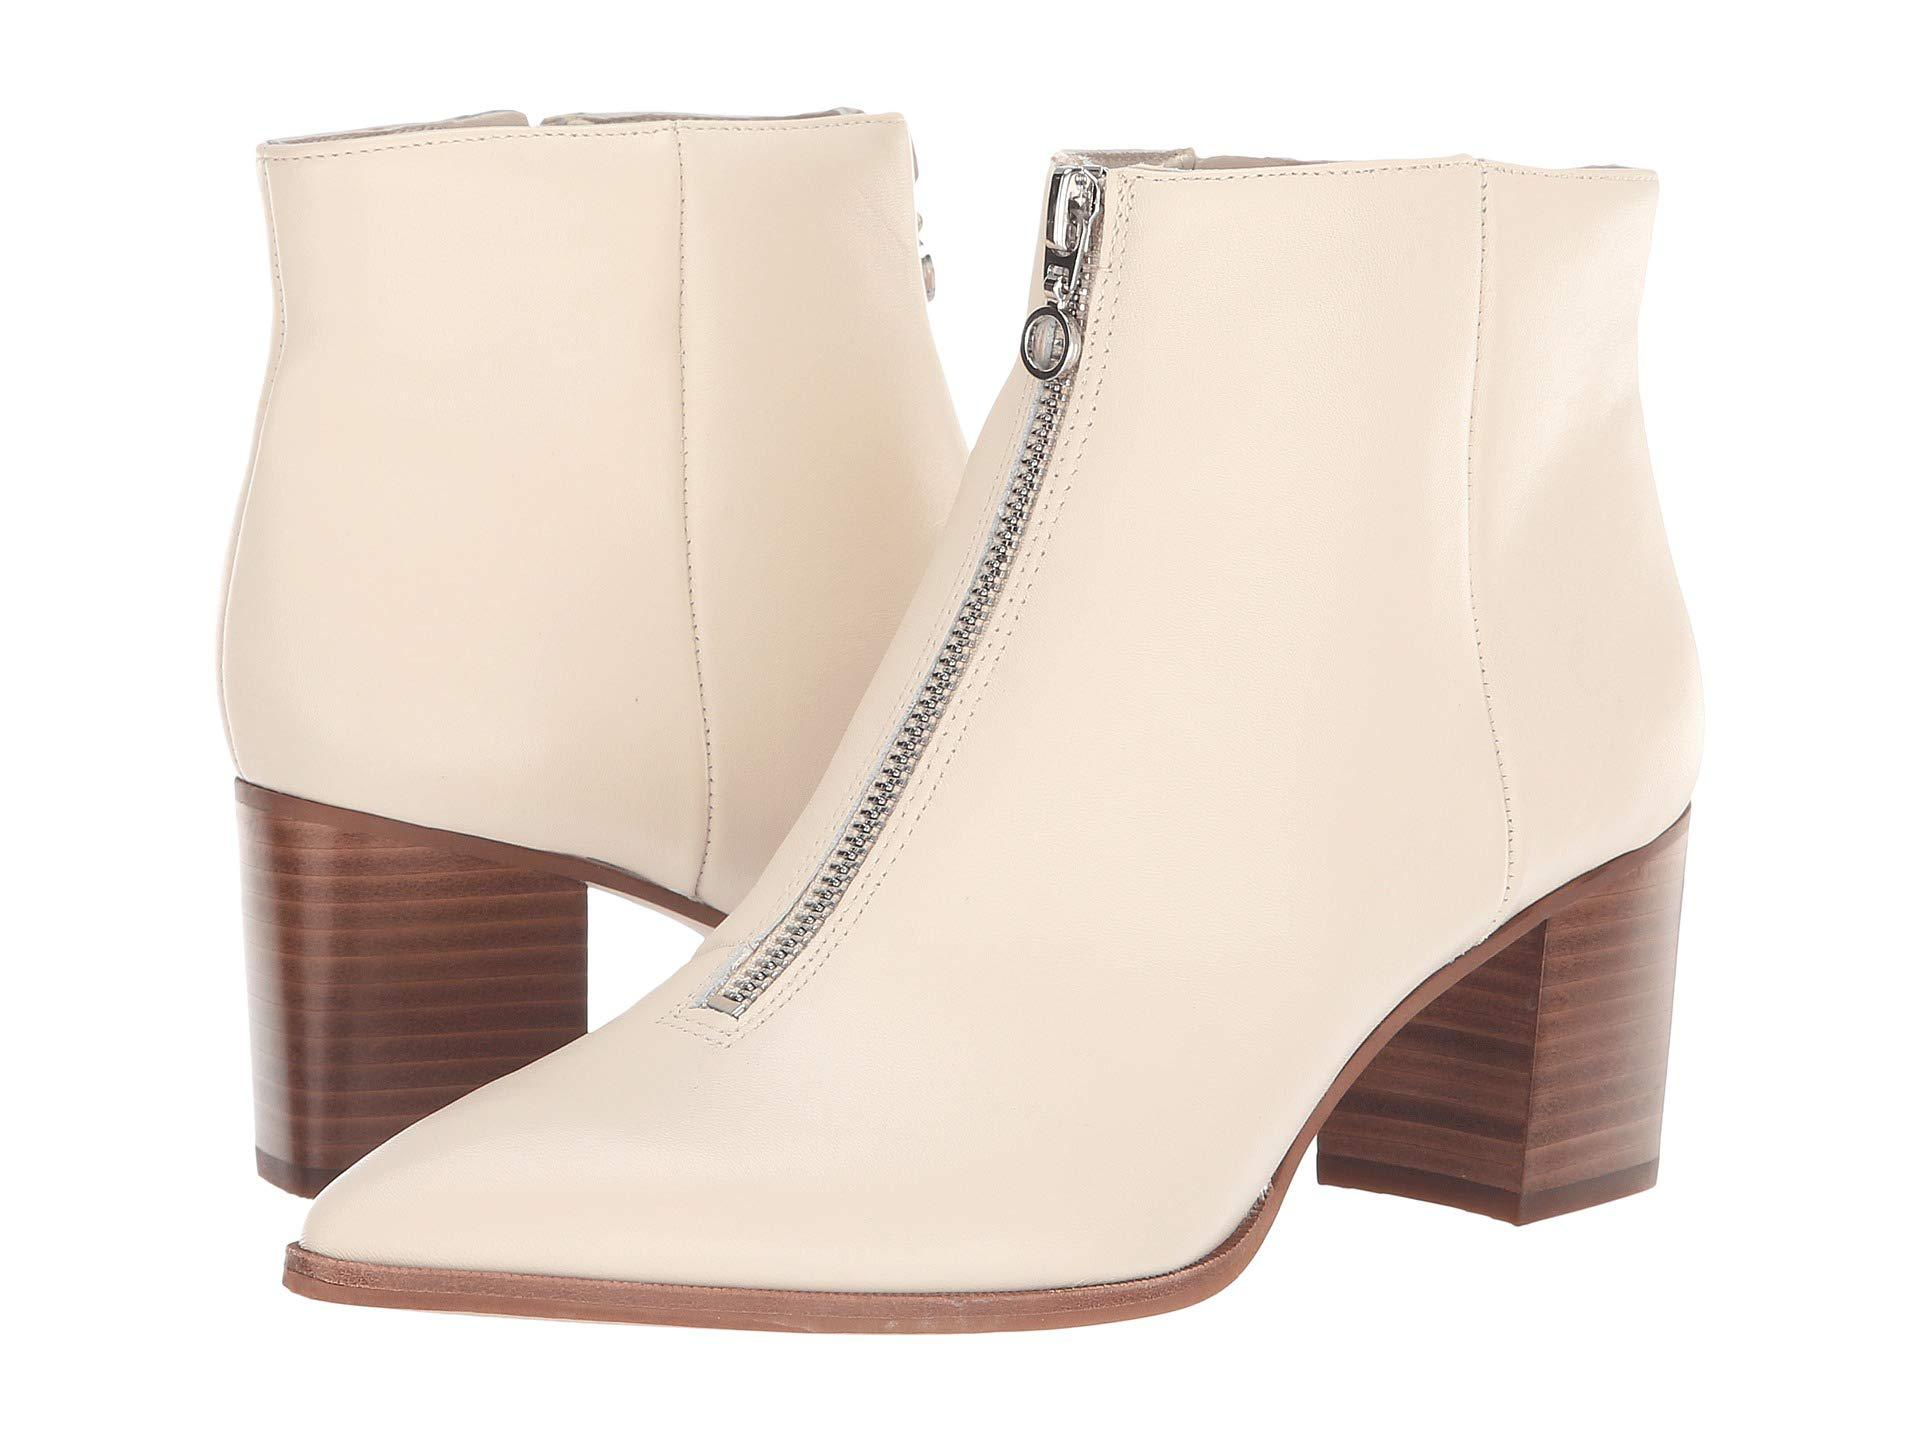 fce3f7a7a09 Lyst - Sole Society Desiray (cream) Women s Boots in Natural